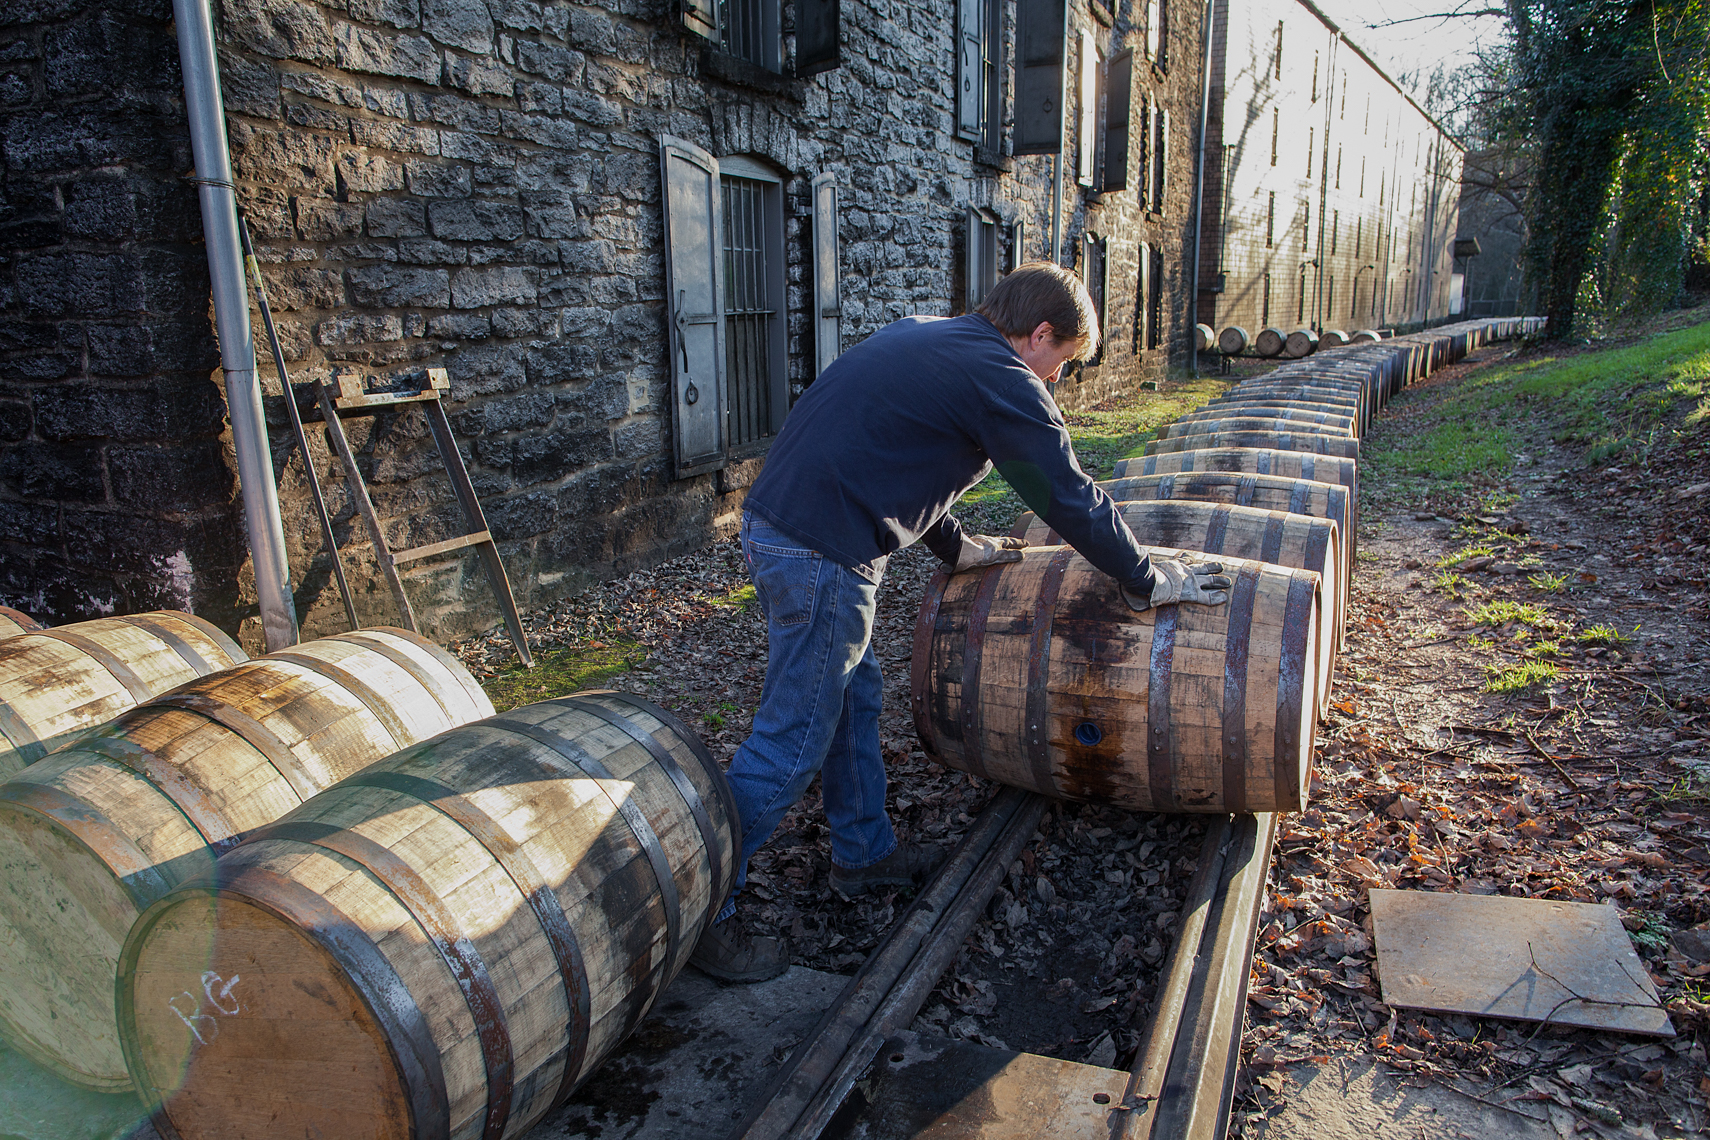 Woodford Reserve Distillery - Kentucky Bourbon Trail